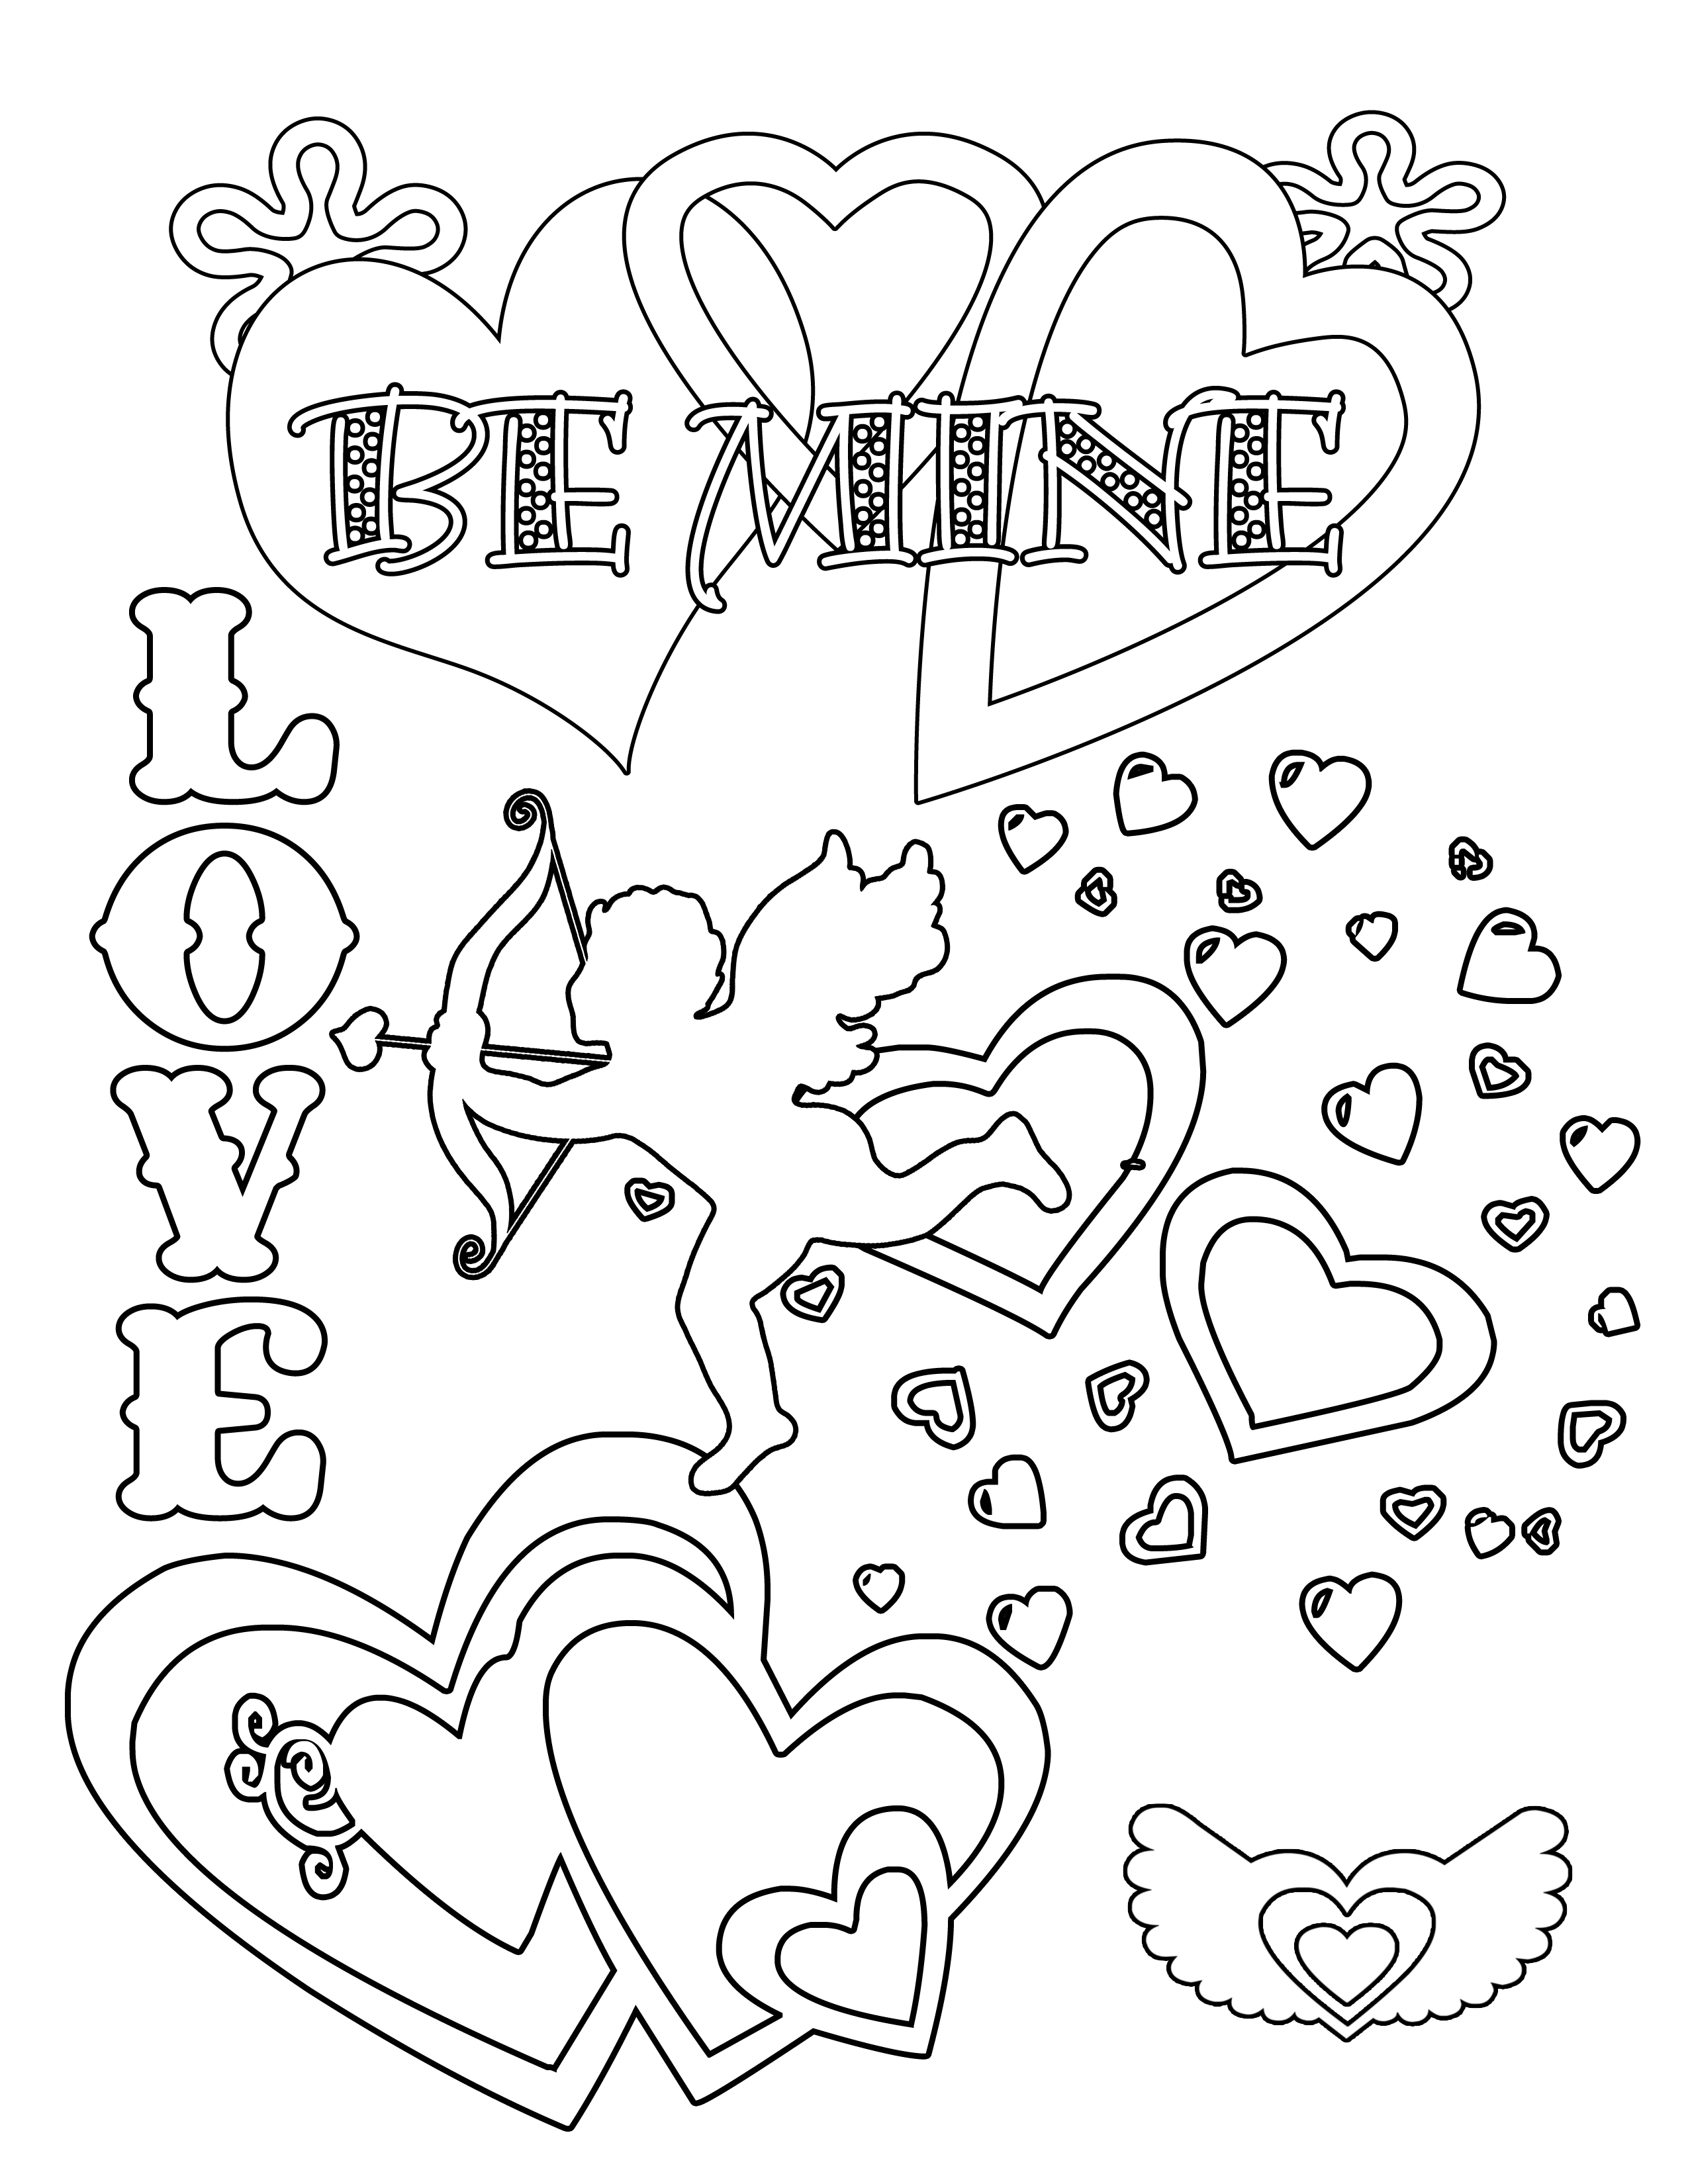 free printable valentines day coloring pages - free valentines day coloring pages and printables